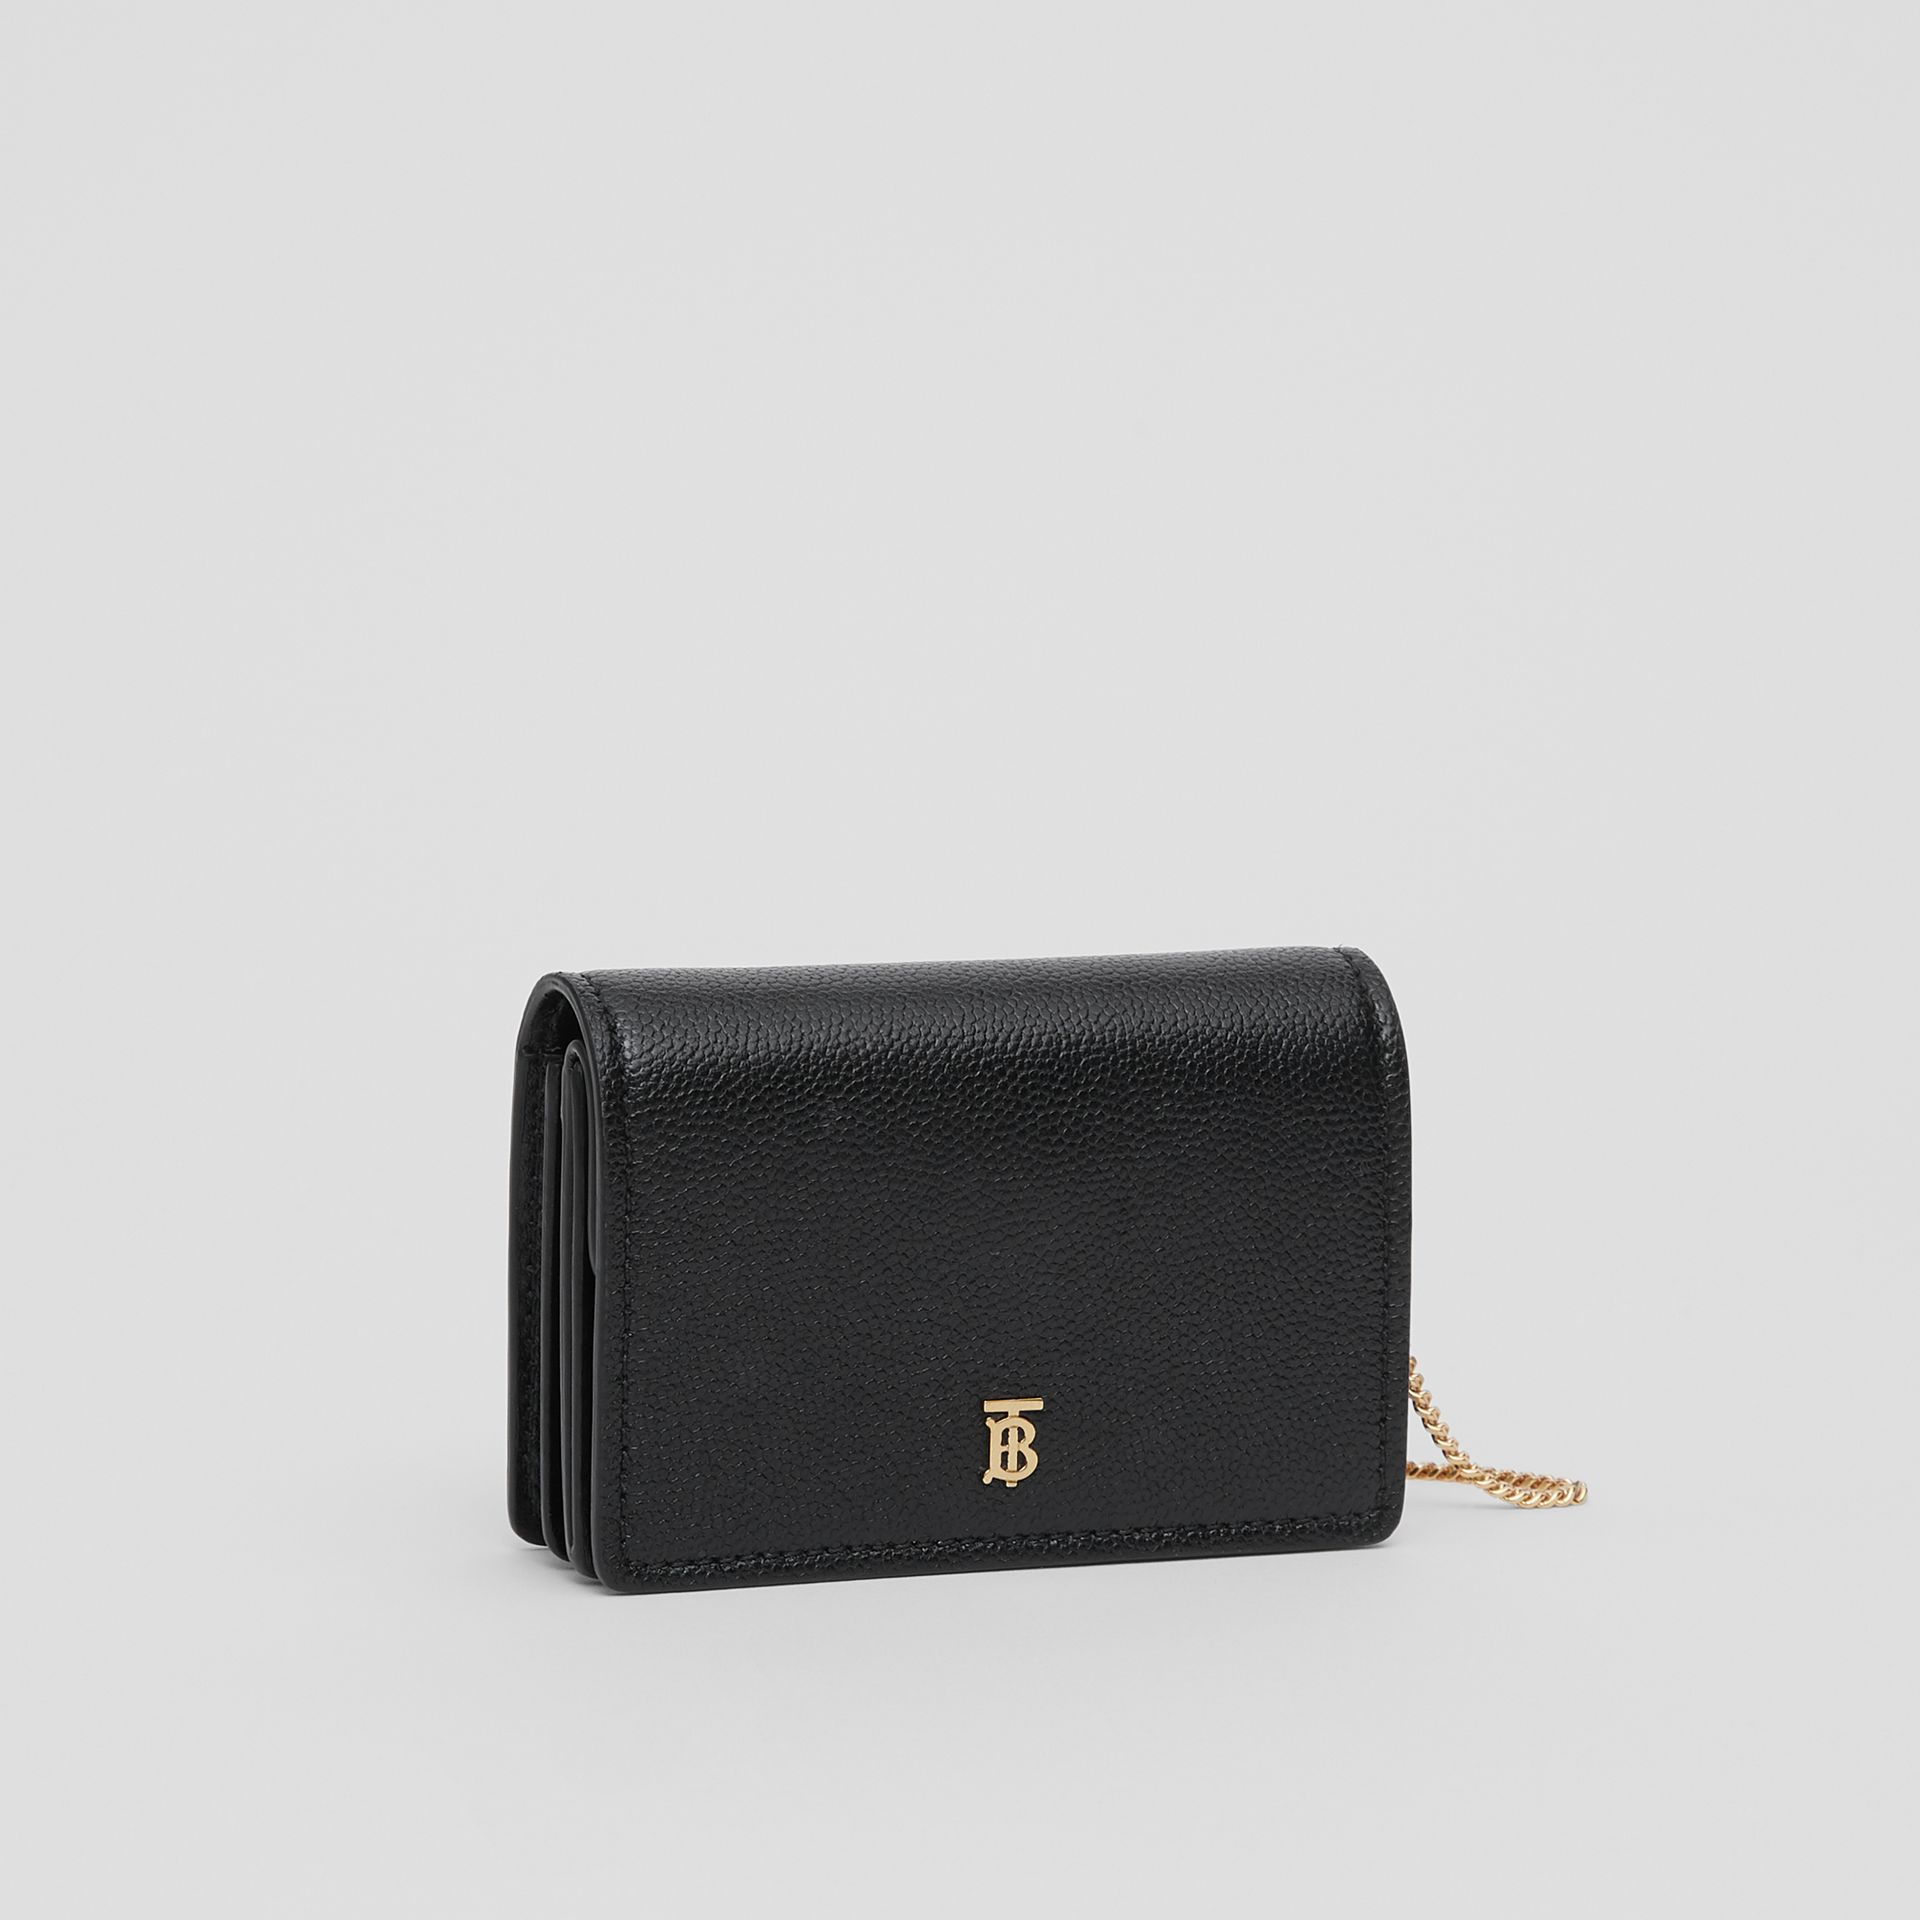 Grainy Leather Card Case with Detachable Strap in Black - Women | Burberry United Kingdom - gallery image 6